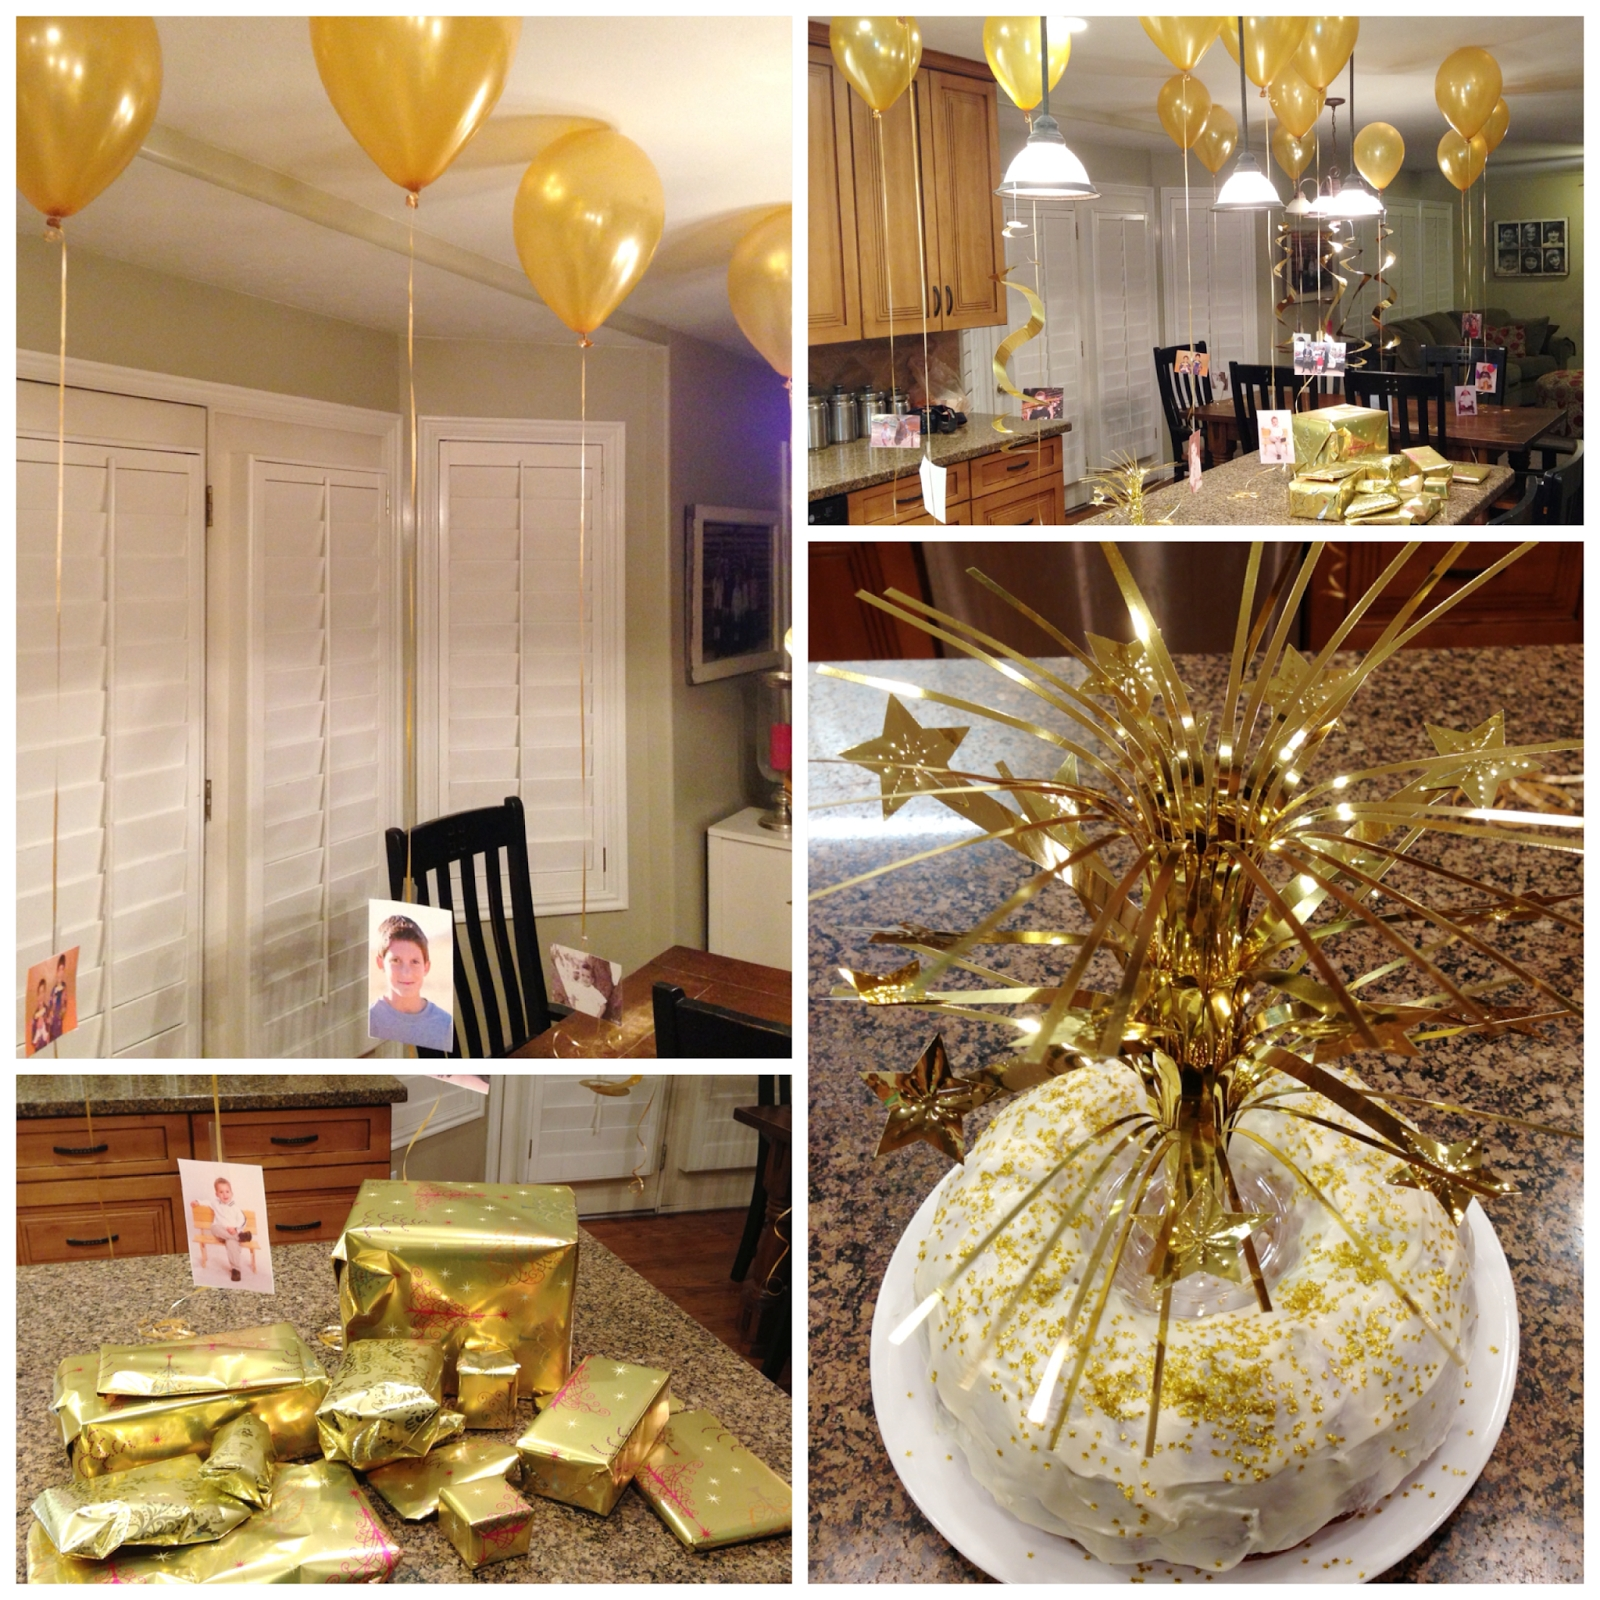 10 Fabulous Golden Birthday Ideas For Adults golden birthday party ideas party ideas pinterest golden 2020